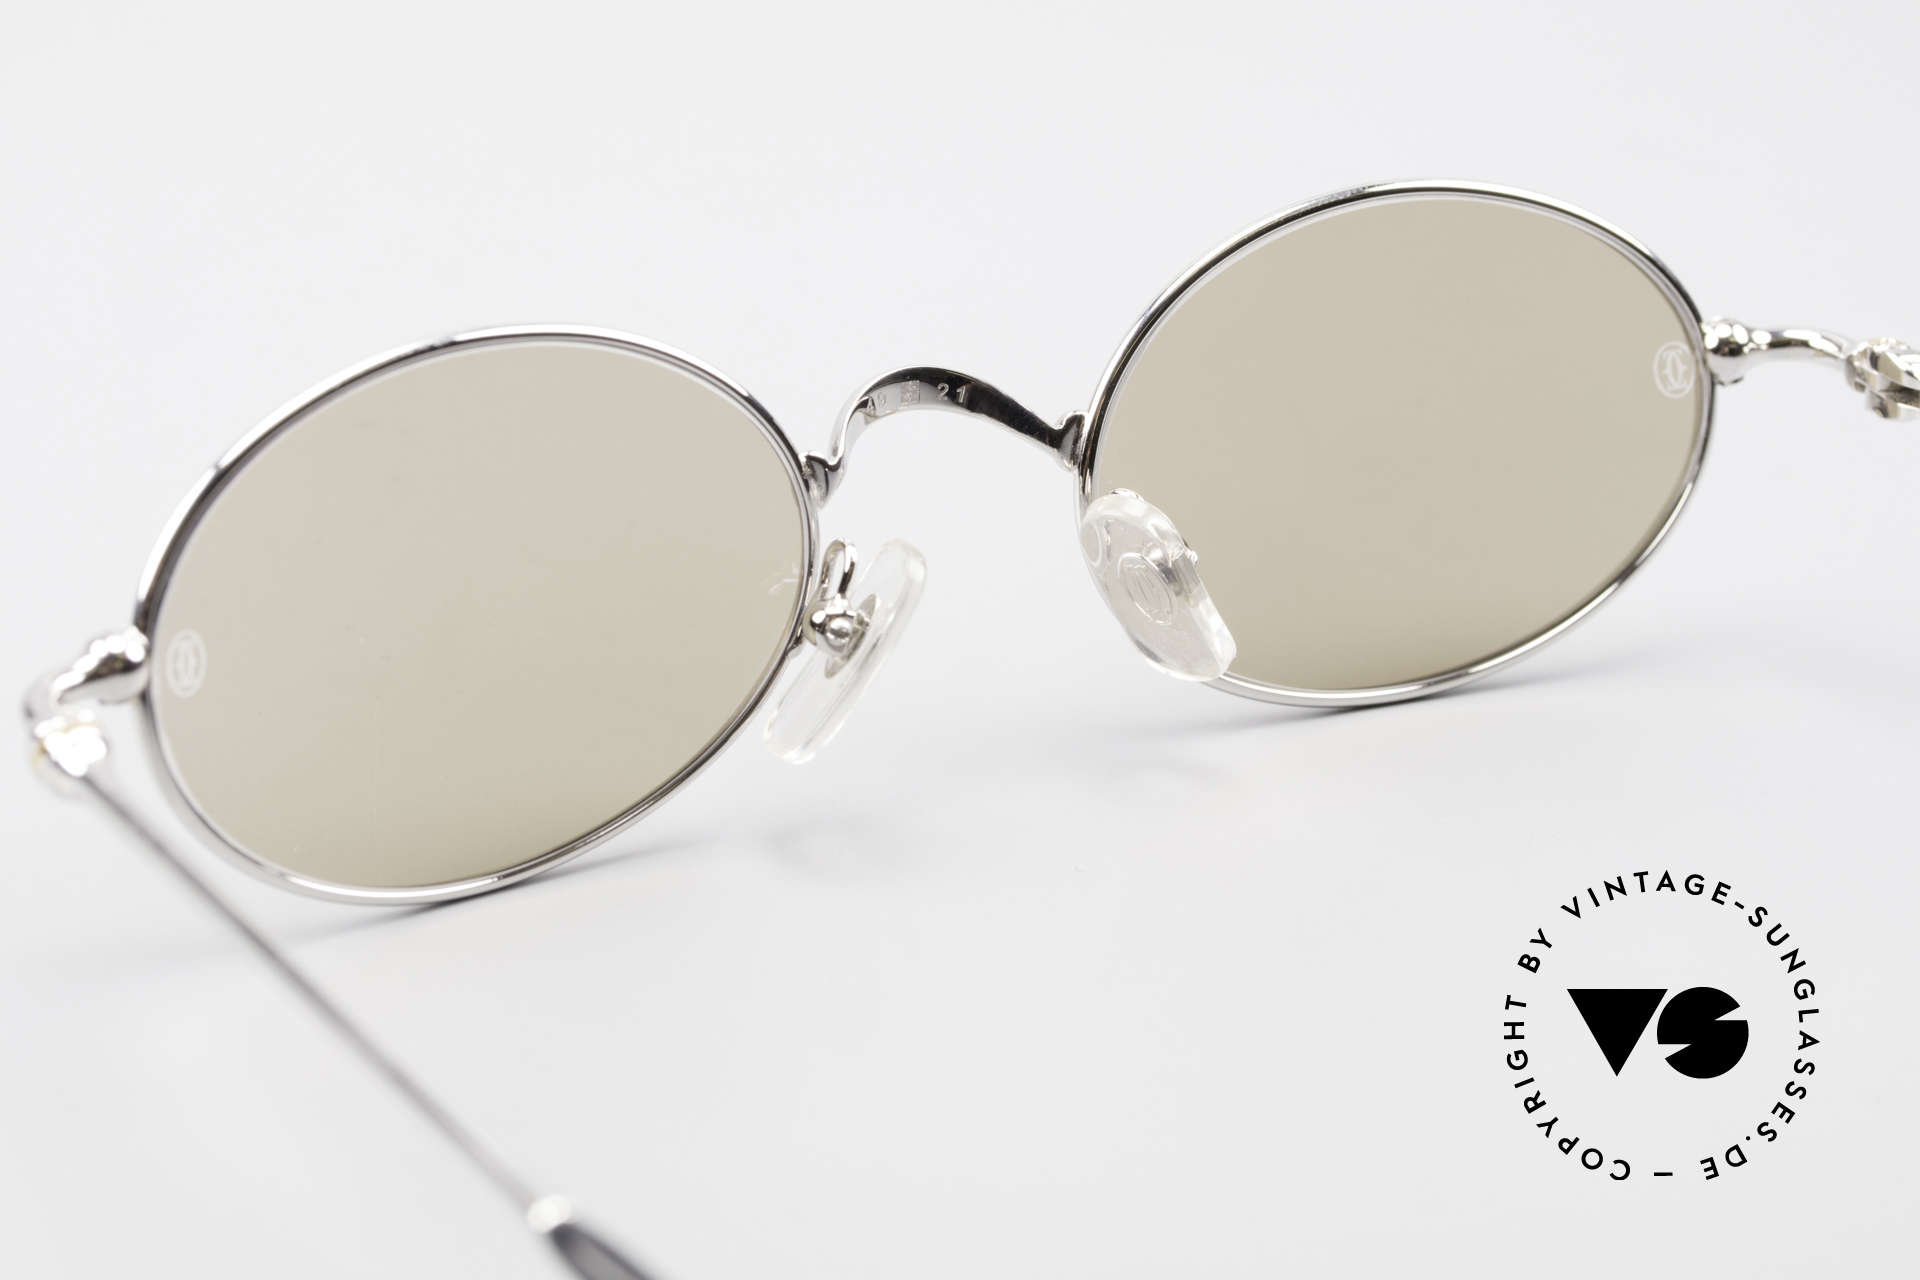 Cartier Filao Oval Platinum Sunglasses 90's, 2nd hand, but in mint condition (like new) + packing, Made for Men and Women